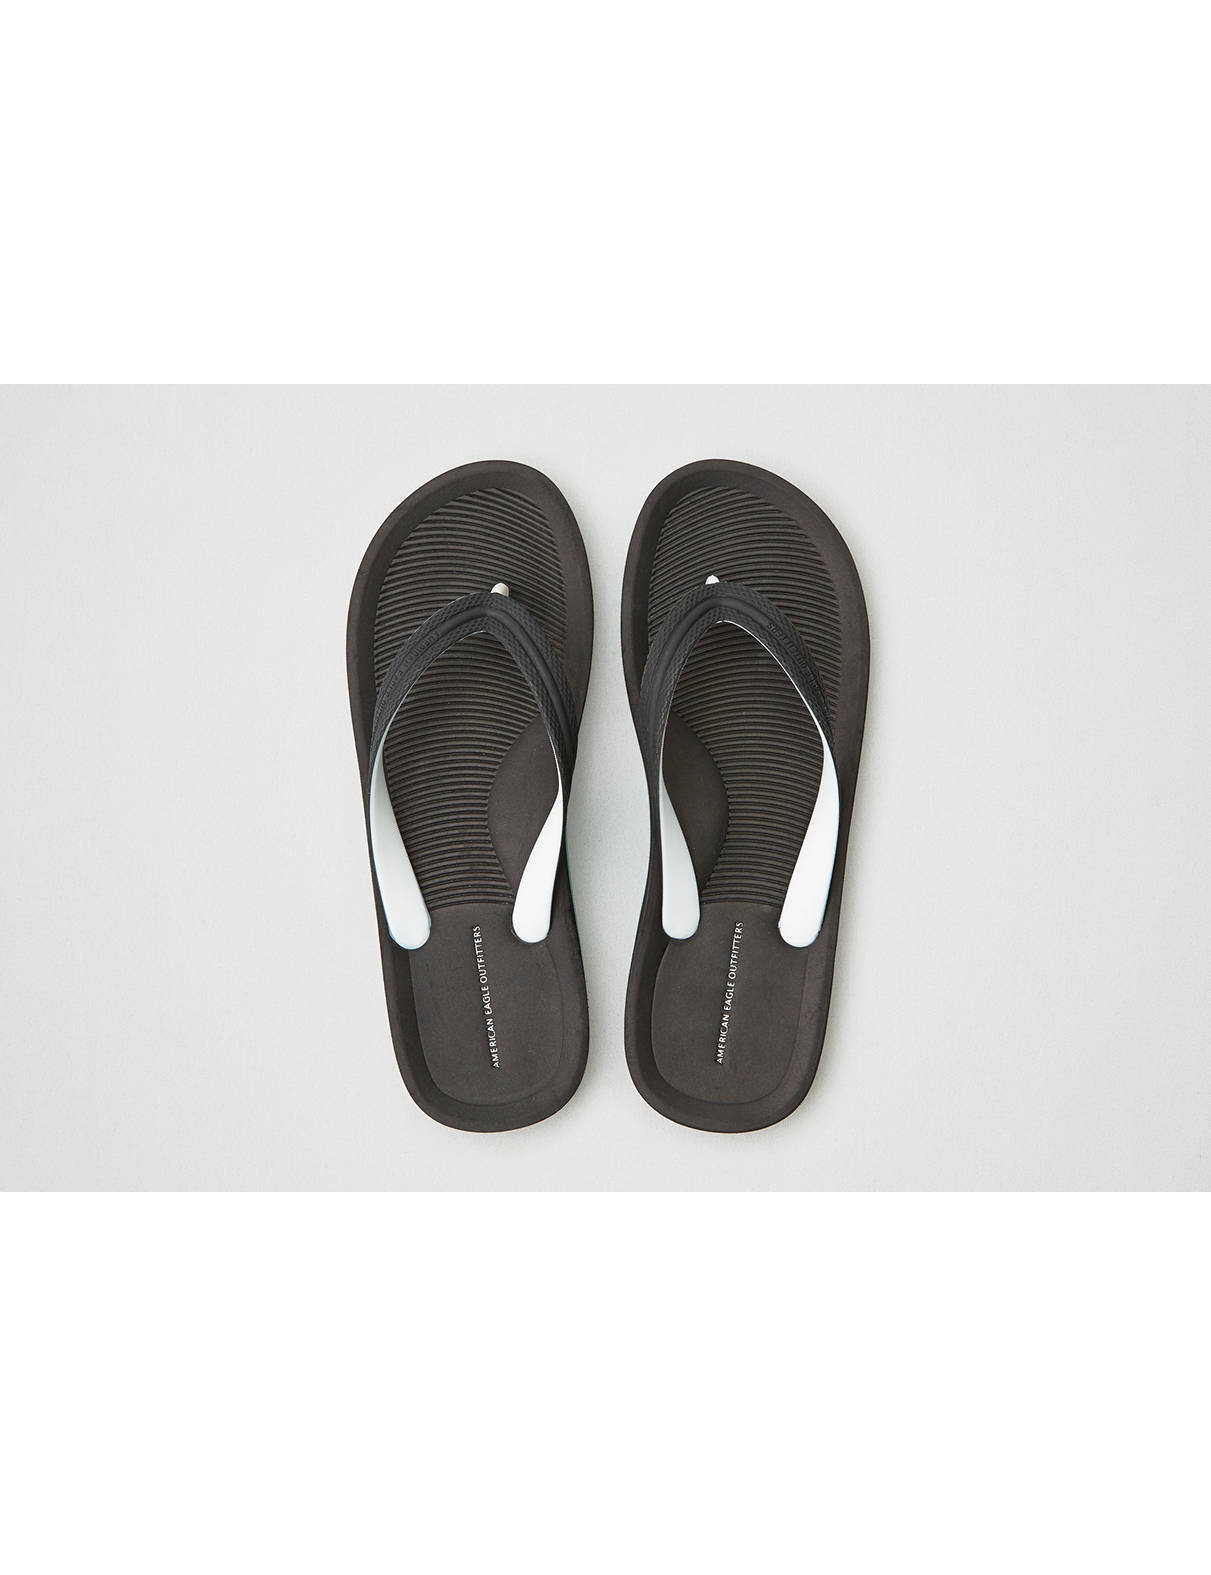 Black sandals ultima online - Display Product Reviews For Aeo Rubber Flip Flop